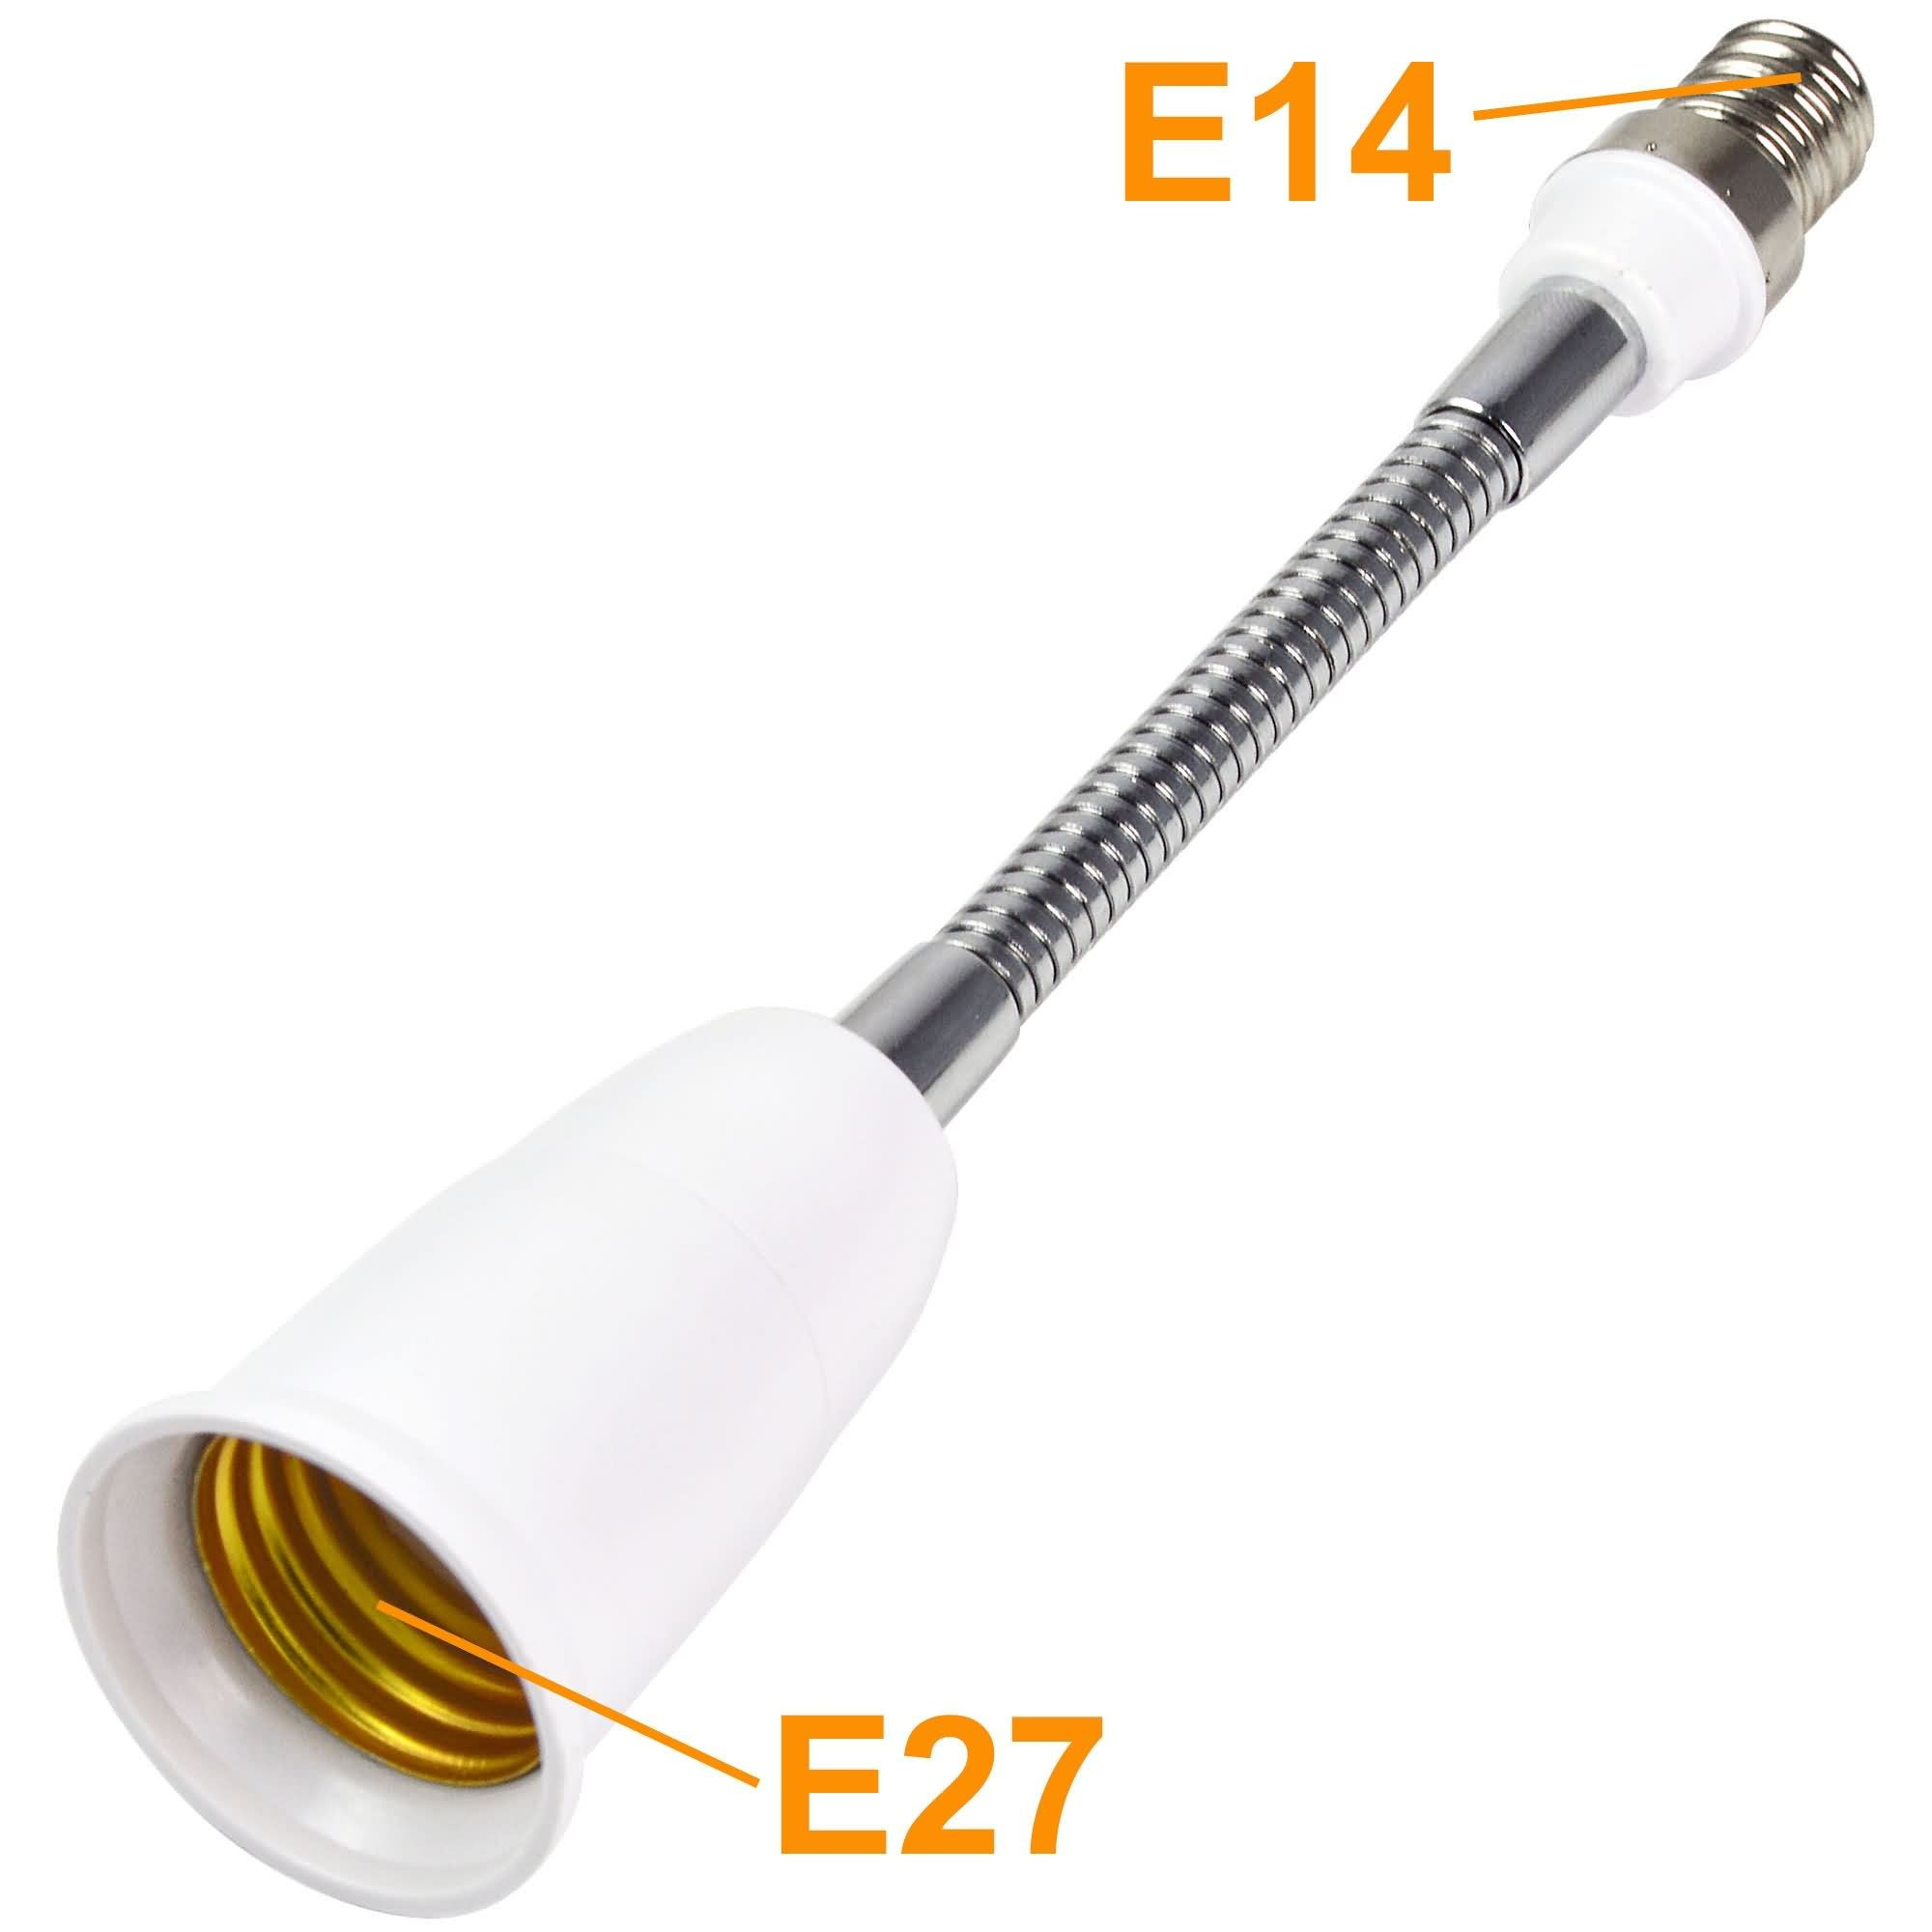 E27 E14 Mengsled Mengs 189mm E14 To E27 Light Bulb Flexible